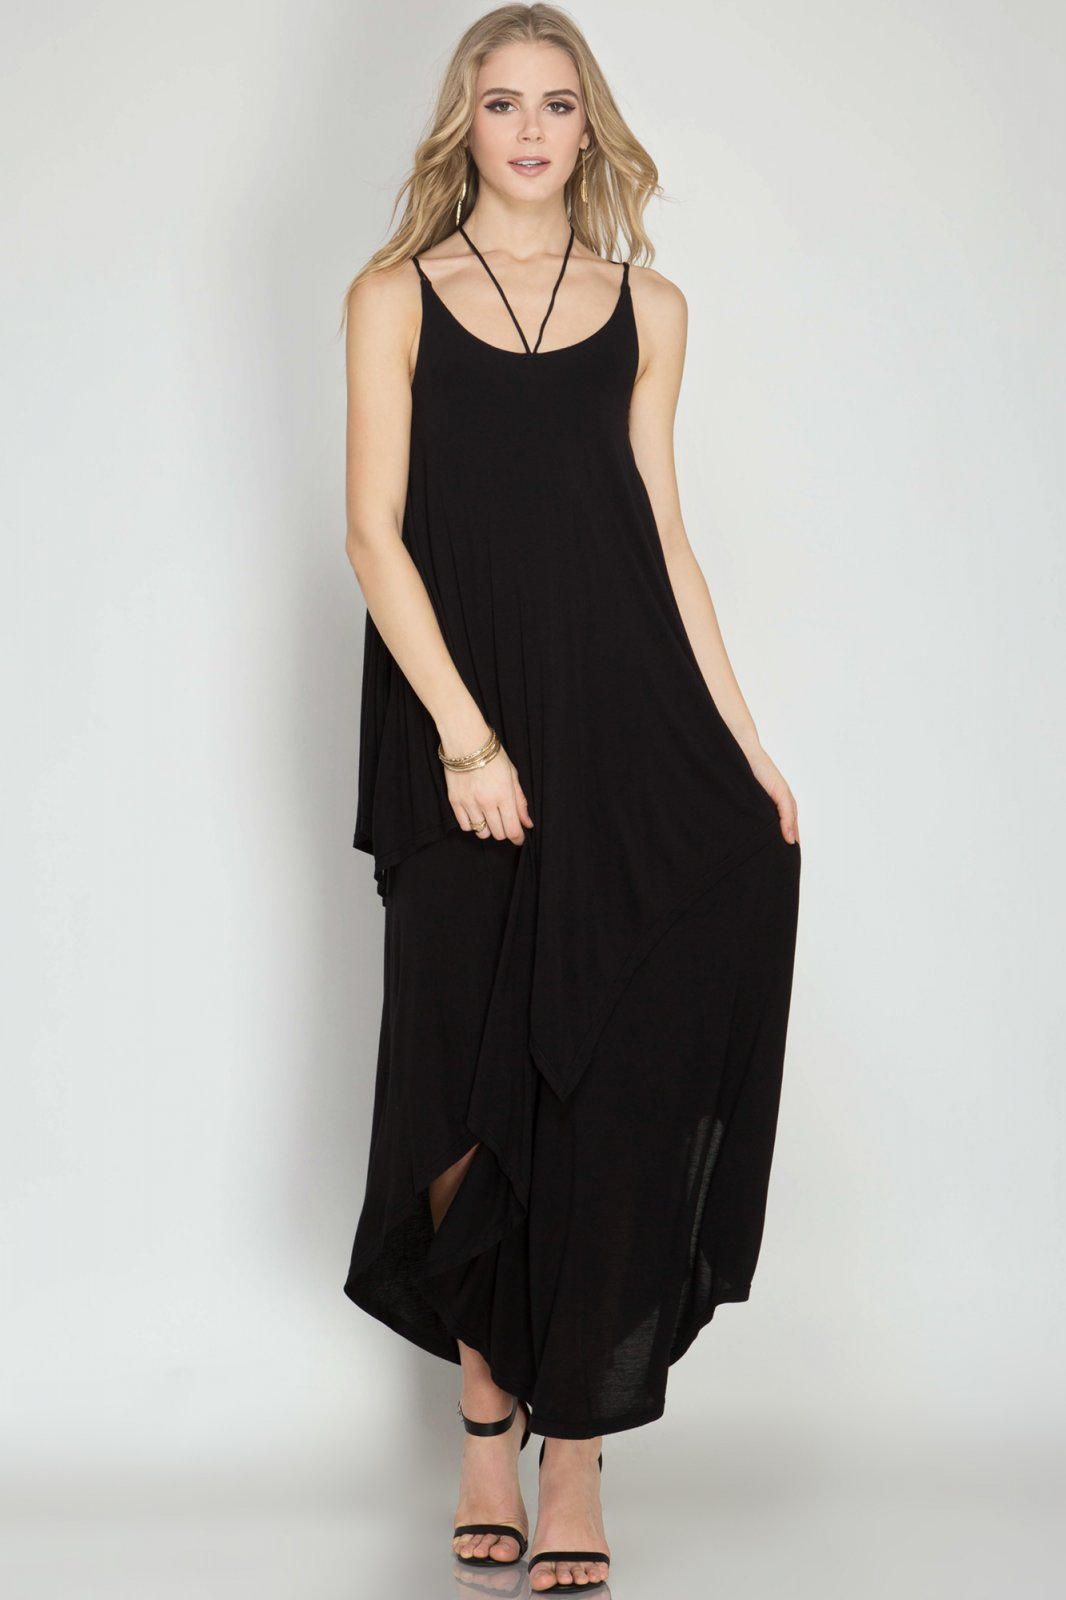 DRESS Maxi Knit Dress BLACK * RAYON